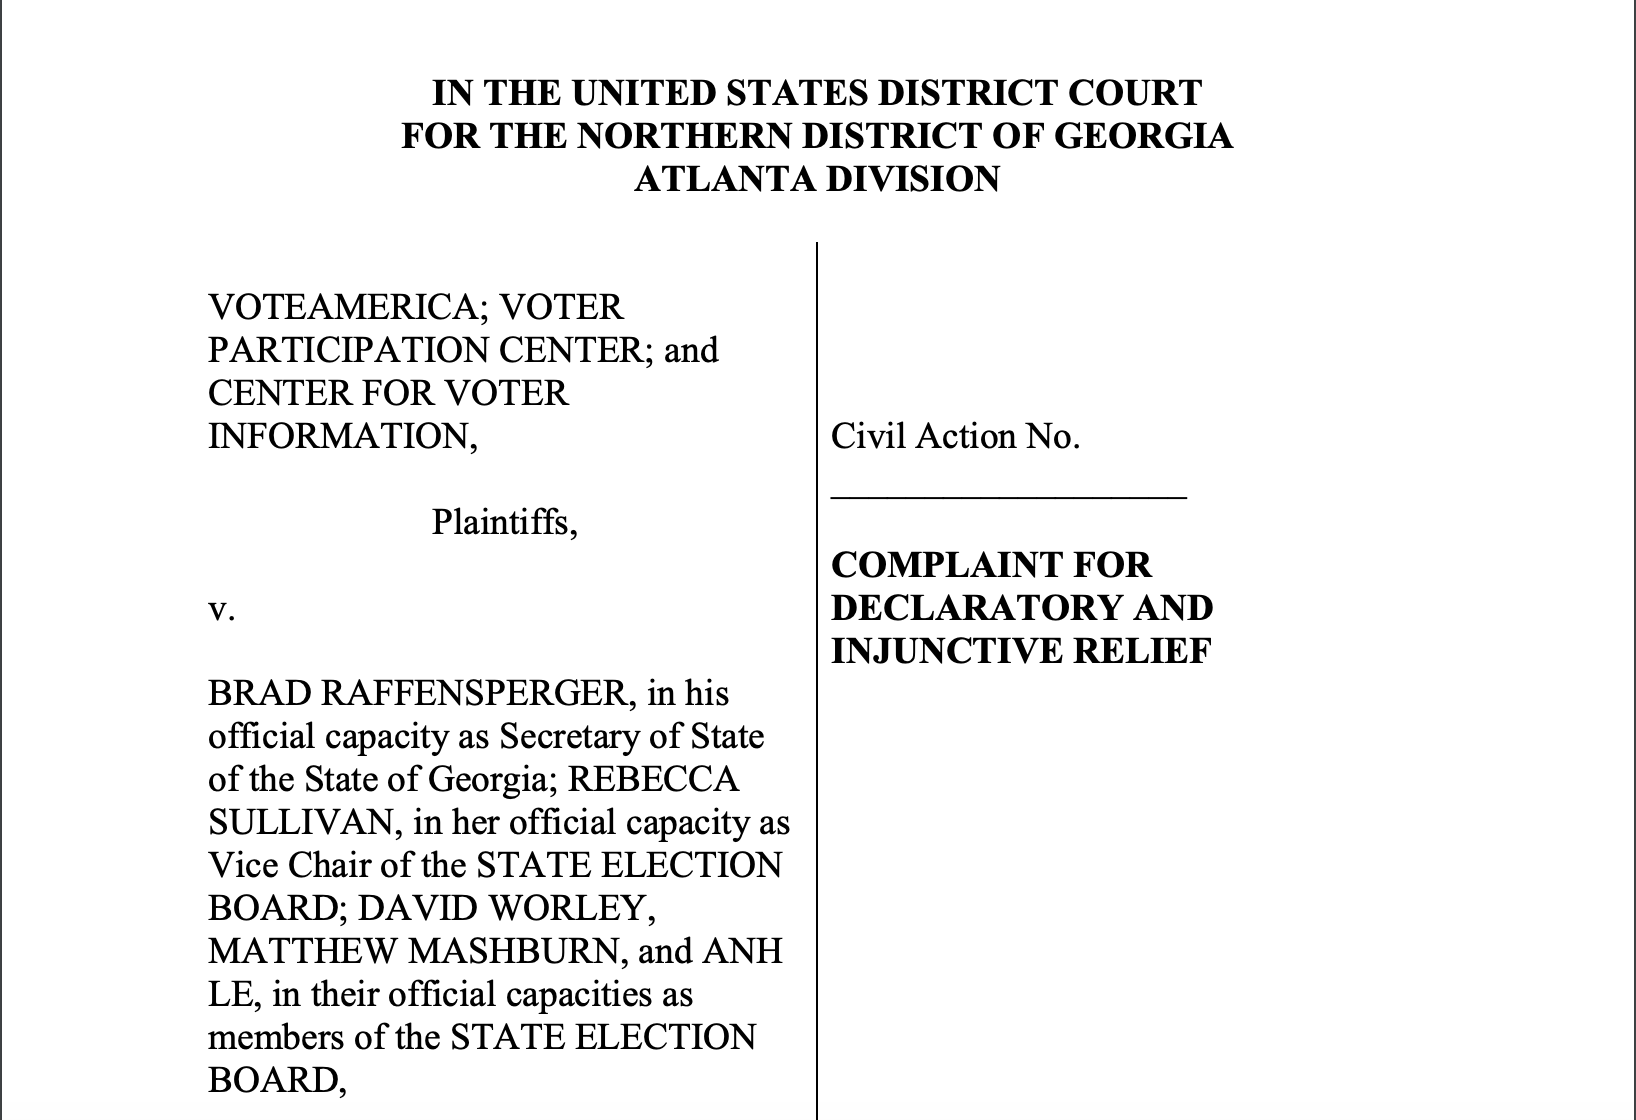 The first page of the lawsuit VoteAmerica filed against the State of Georgia.